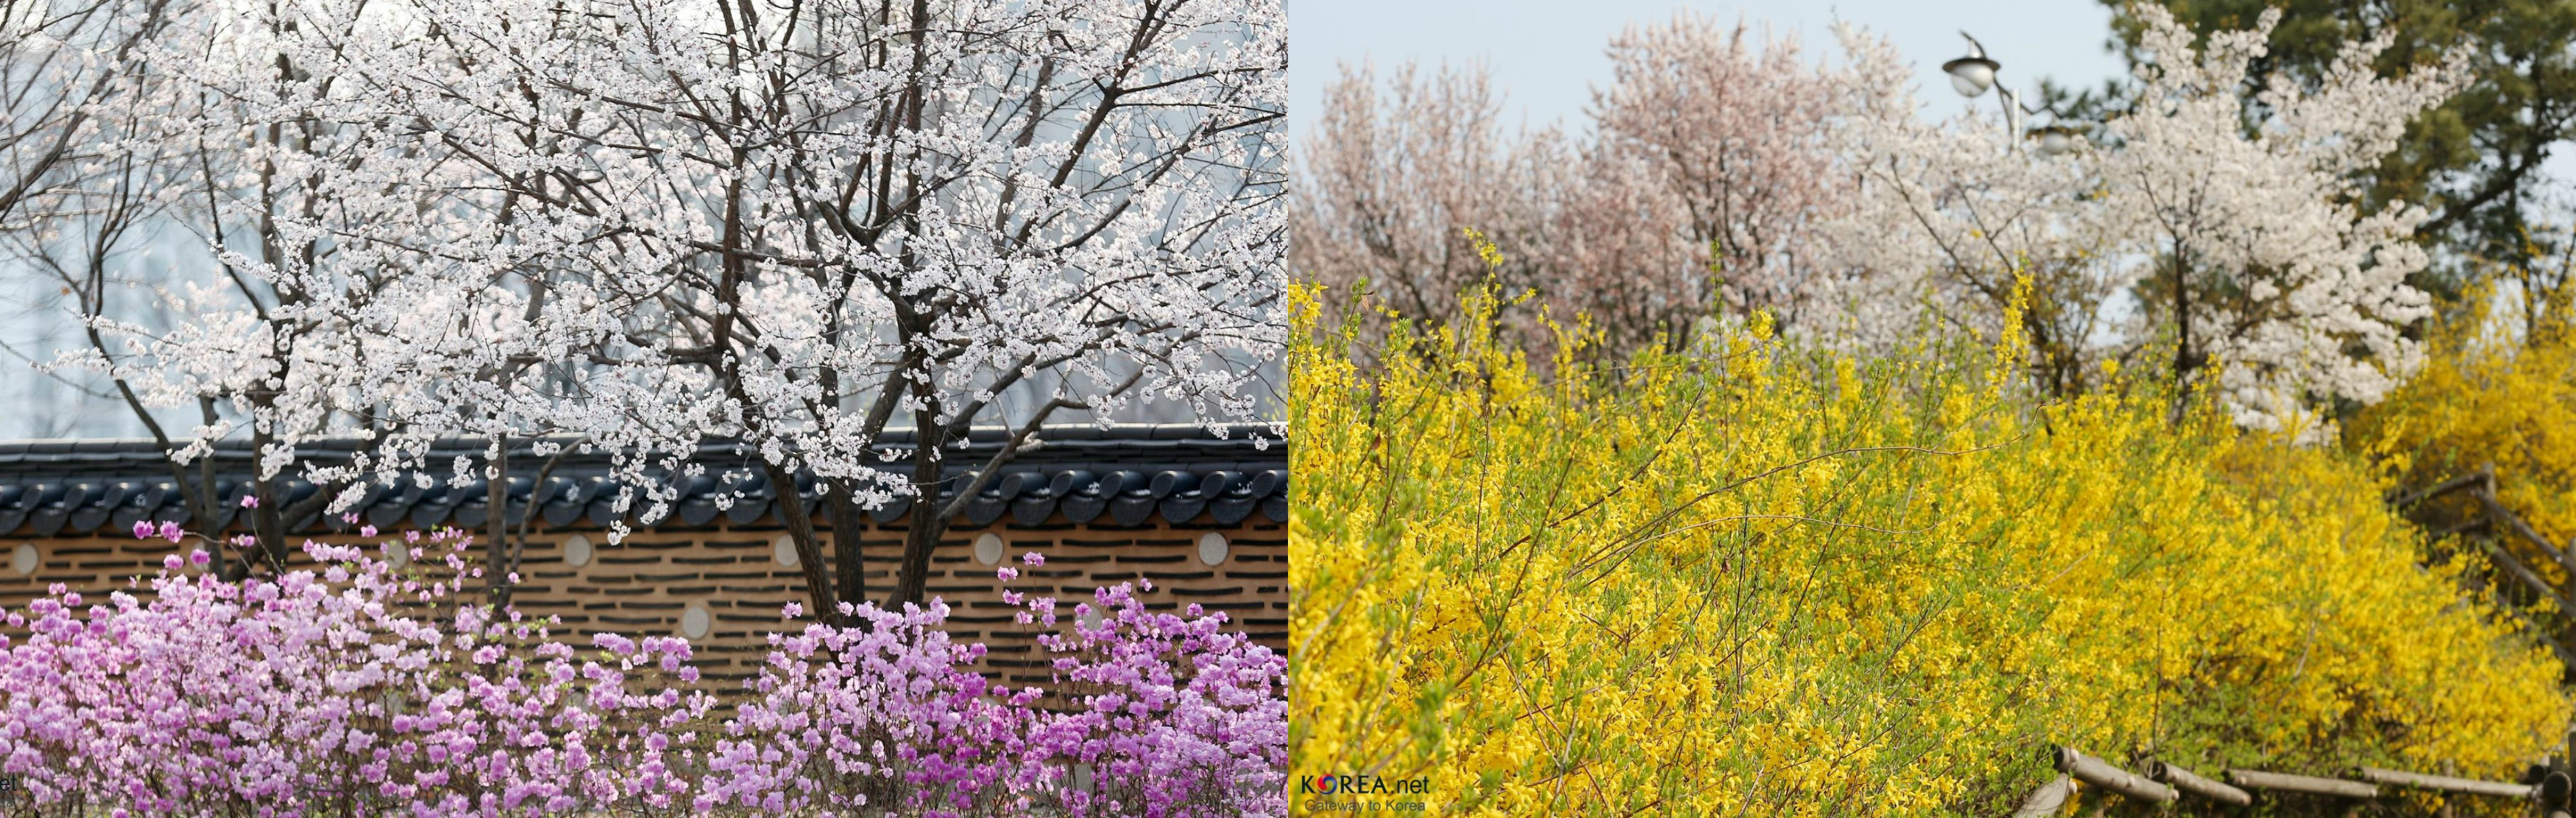 Top 3 Cherry Blossom Viewing Spots In Japan Korea And Taiwan For